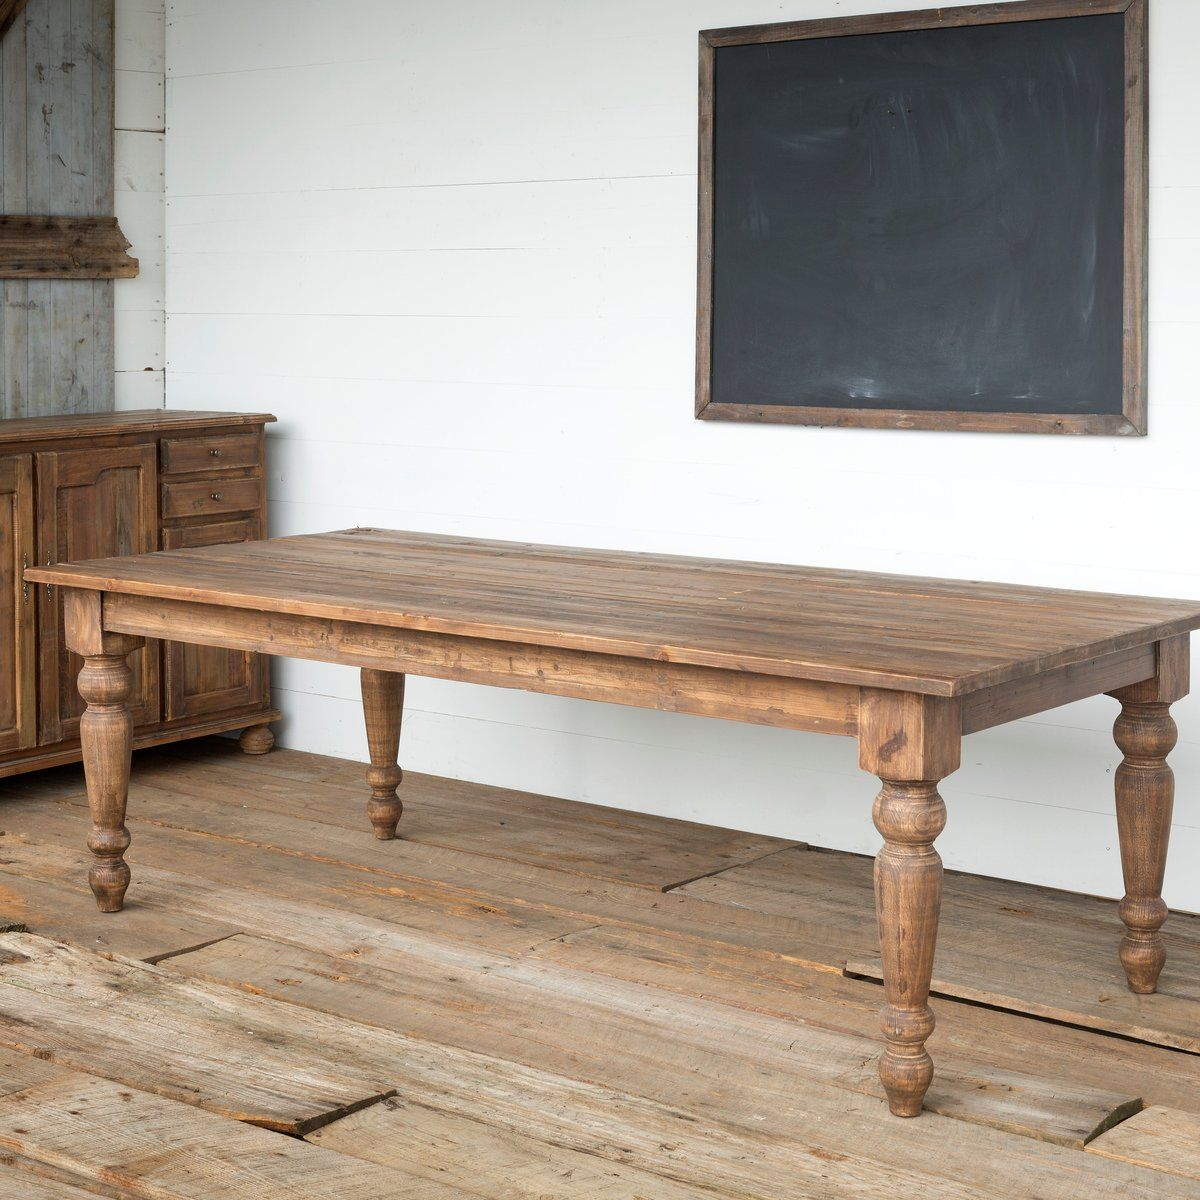 The Jo large dining table is part of our Kingsland Furniture Collection. This is a nearly 8 feet long pine farm table with large carved legs. Perfect for your large family or family gatherings. A sturdy solid table that will be a heirloom for generations to come. Large enough for plenty of chairs. (Imperfections are no